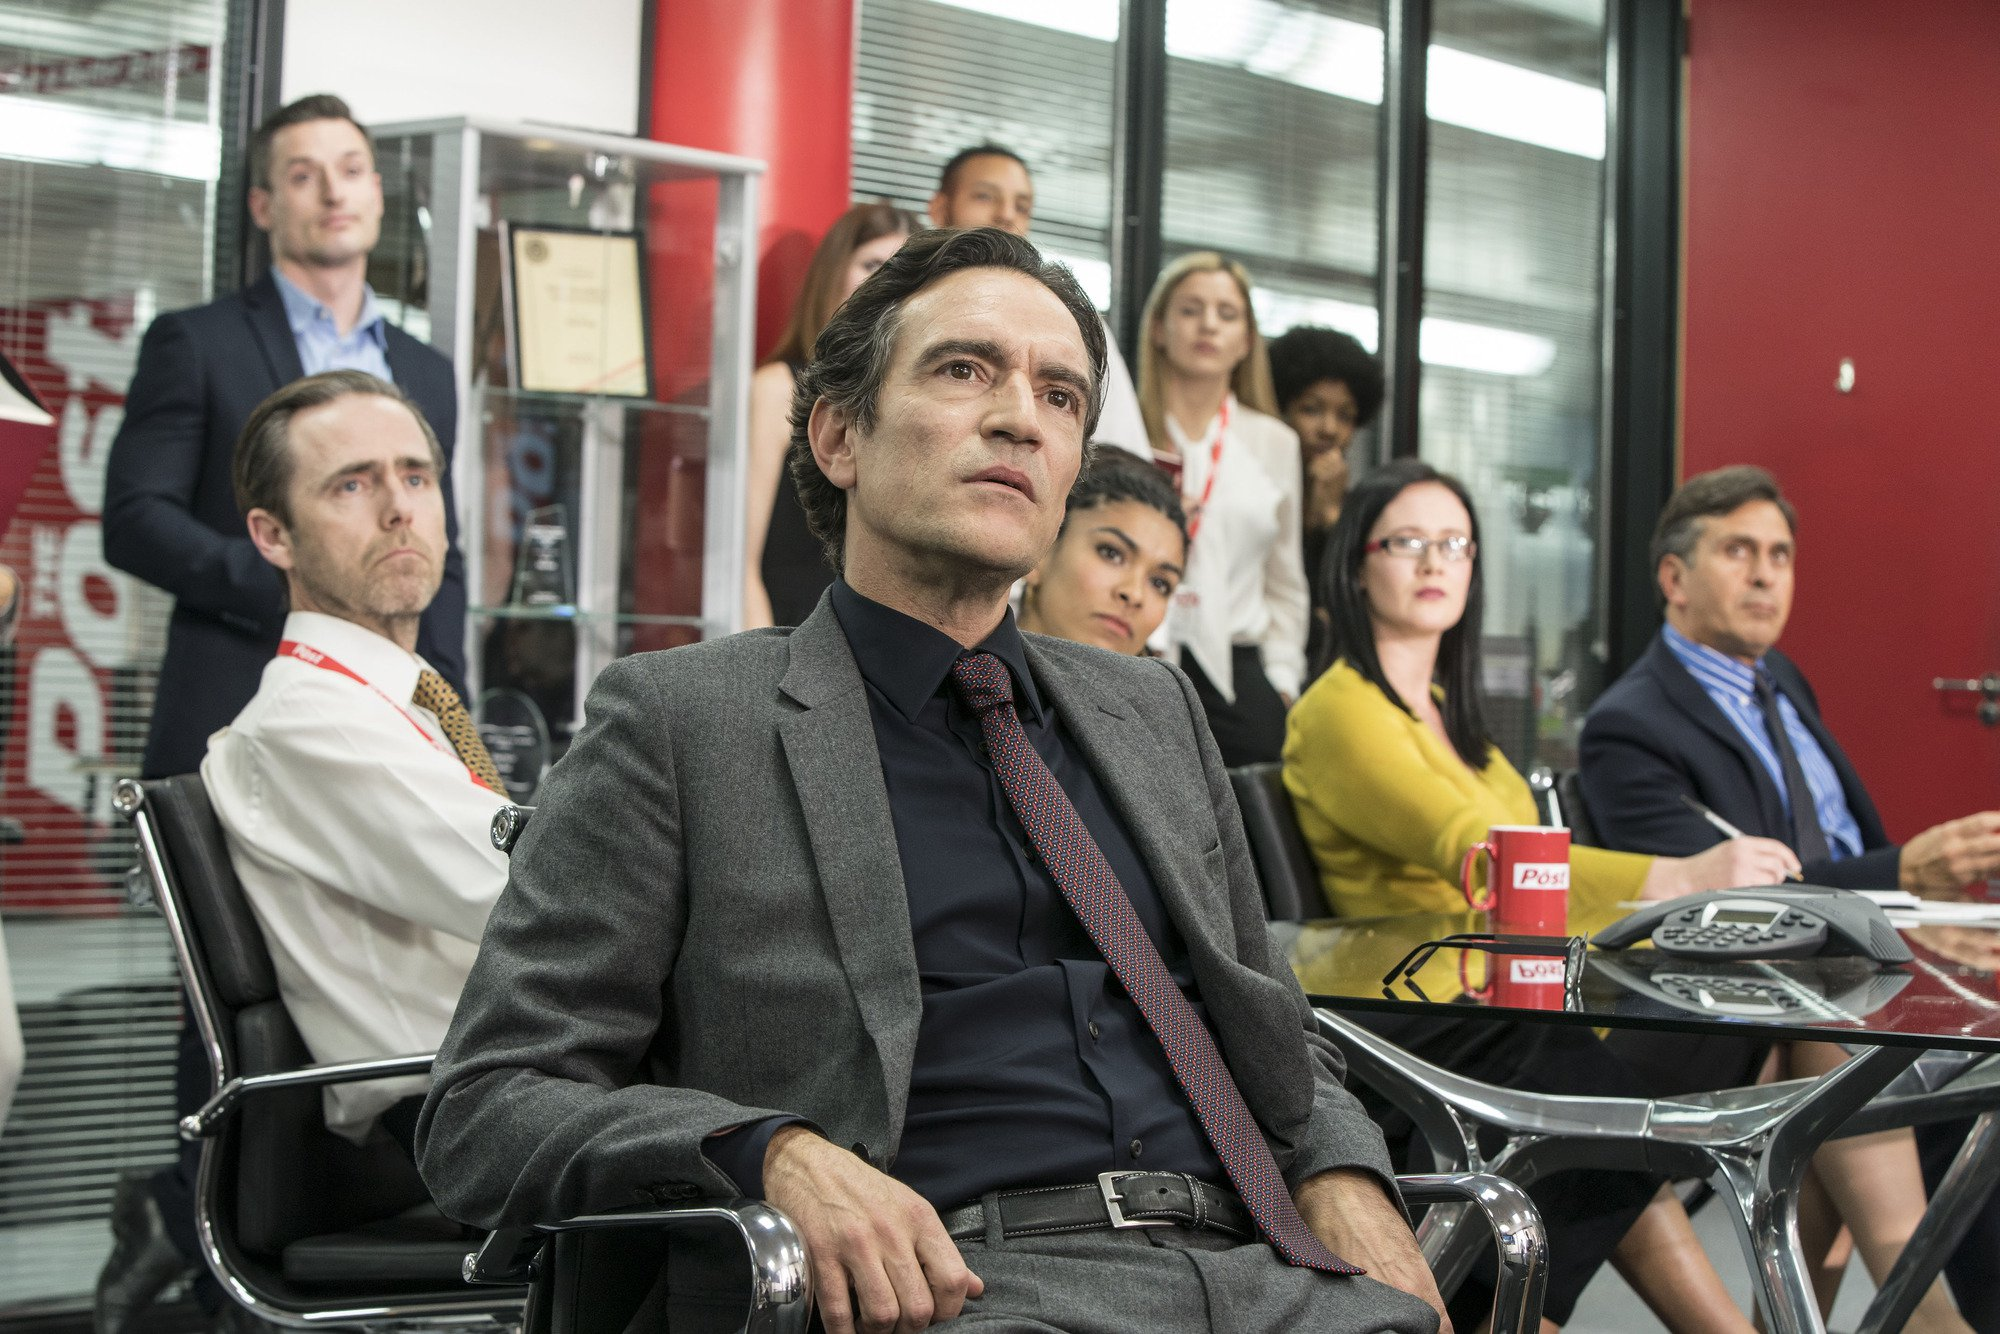 WARNING: Embargoed for publication until 00:00:01 on 28/08/2018 - Programme Name: Press - TX: n/a - Episode: n/a (No. n/a) - Picture Shows: ***EMBARGOED UNTIL 28th AUG 2018*** Duncan Allen (BEN CHAPLIN) - (C) Lookout Point - Photographer: Colin Hutton